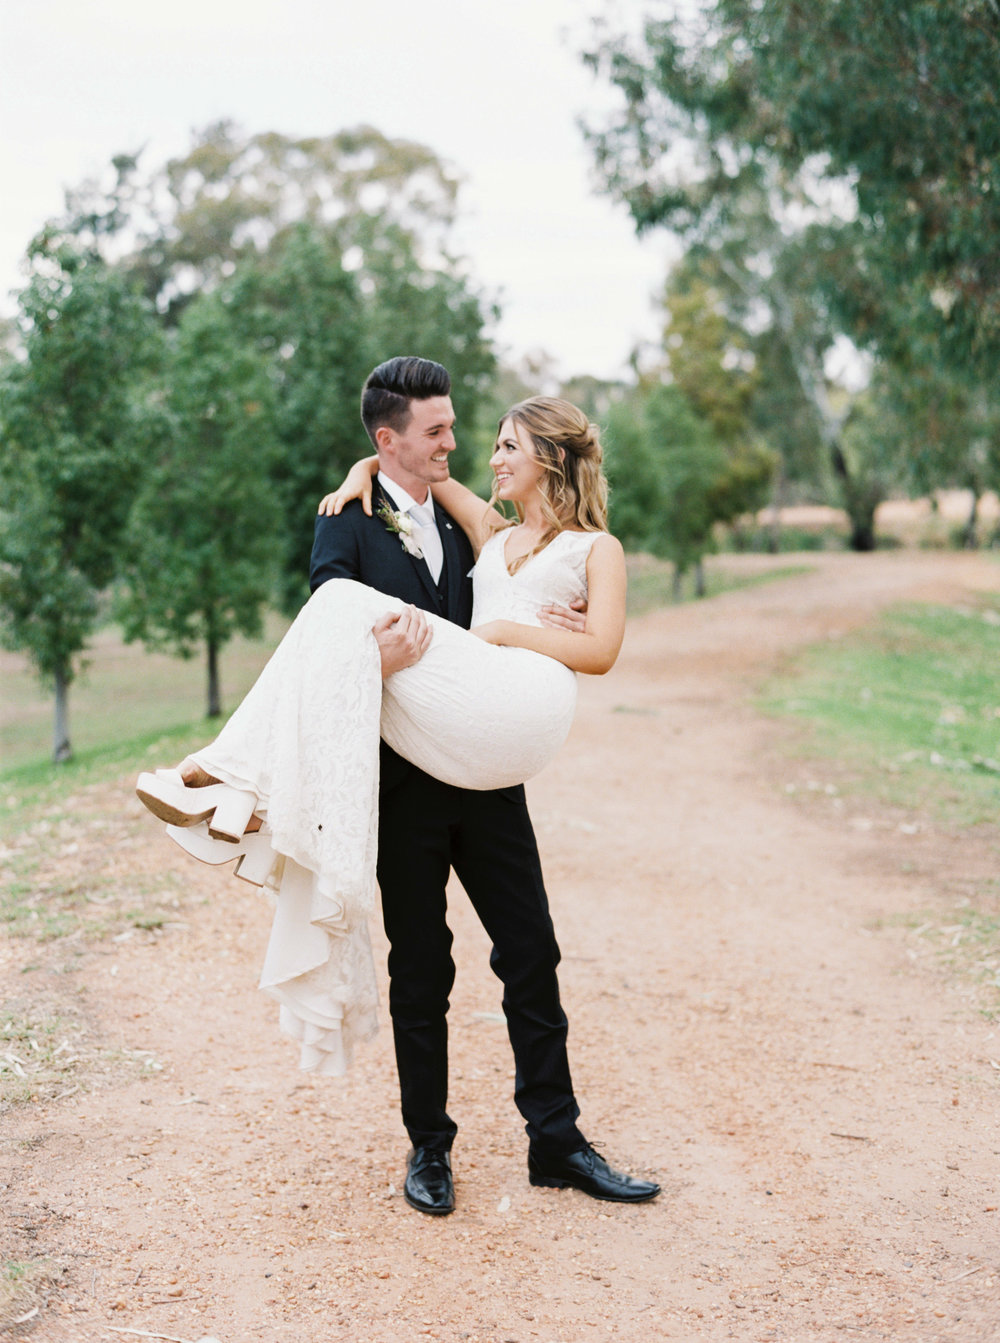 00065- Newcastle NSW Hunter Valley Wedding Photographer Sheri McMahon.jpg